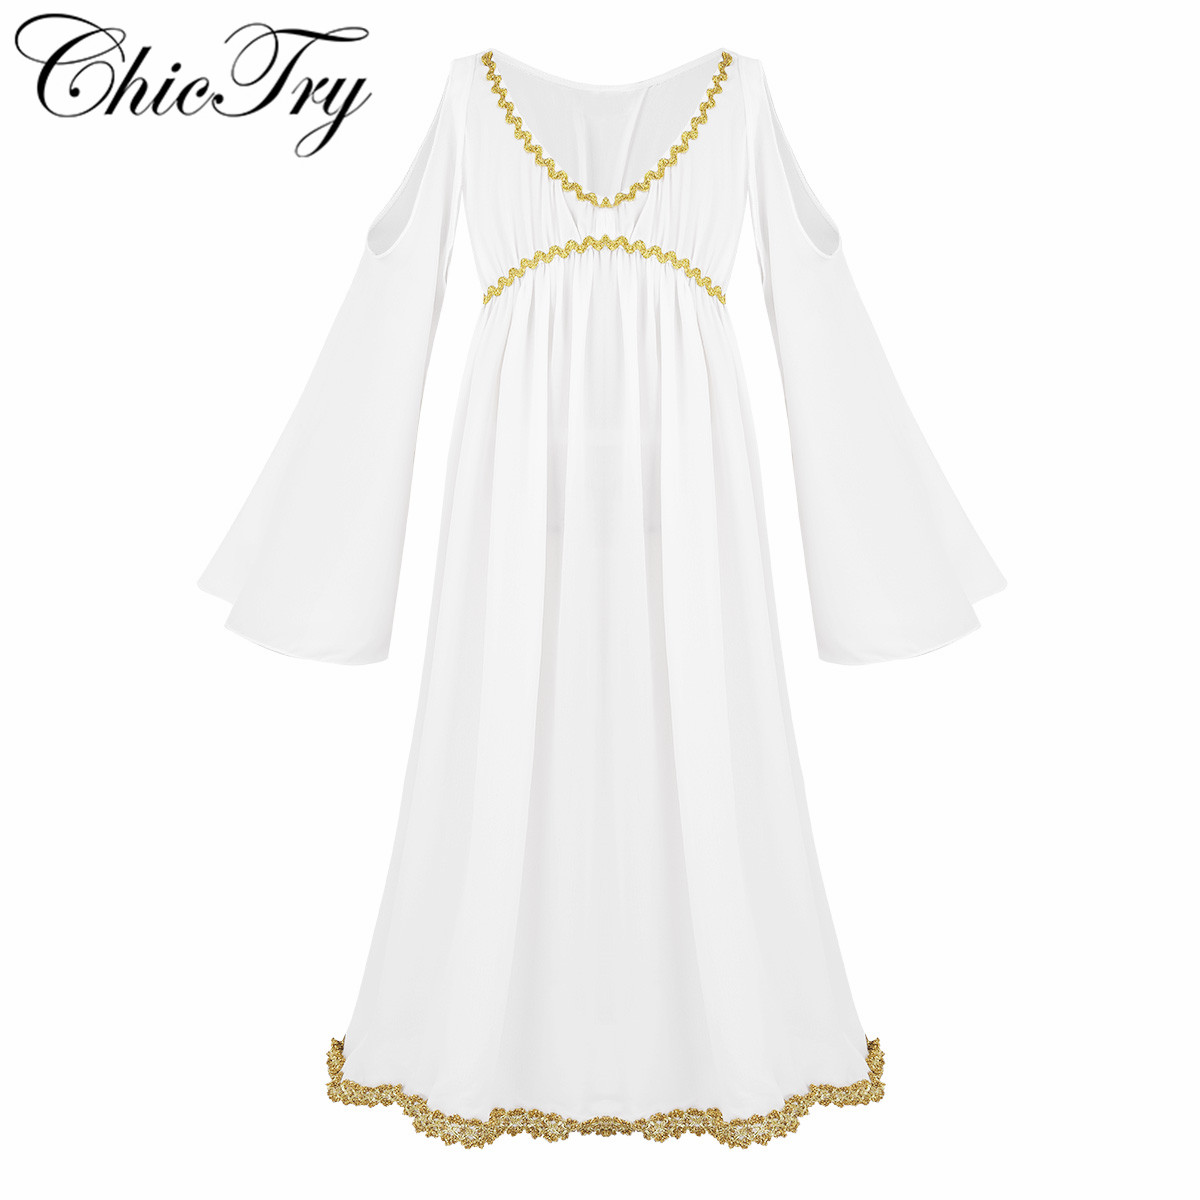 Girls Ancient Greek Girl Costume Fancy Dress Up Party Toga Outfit Kids age 8-10